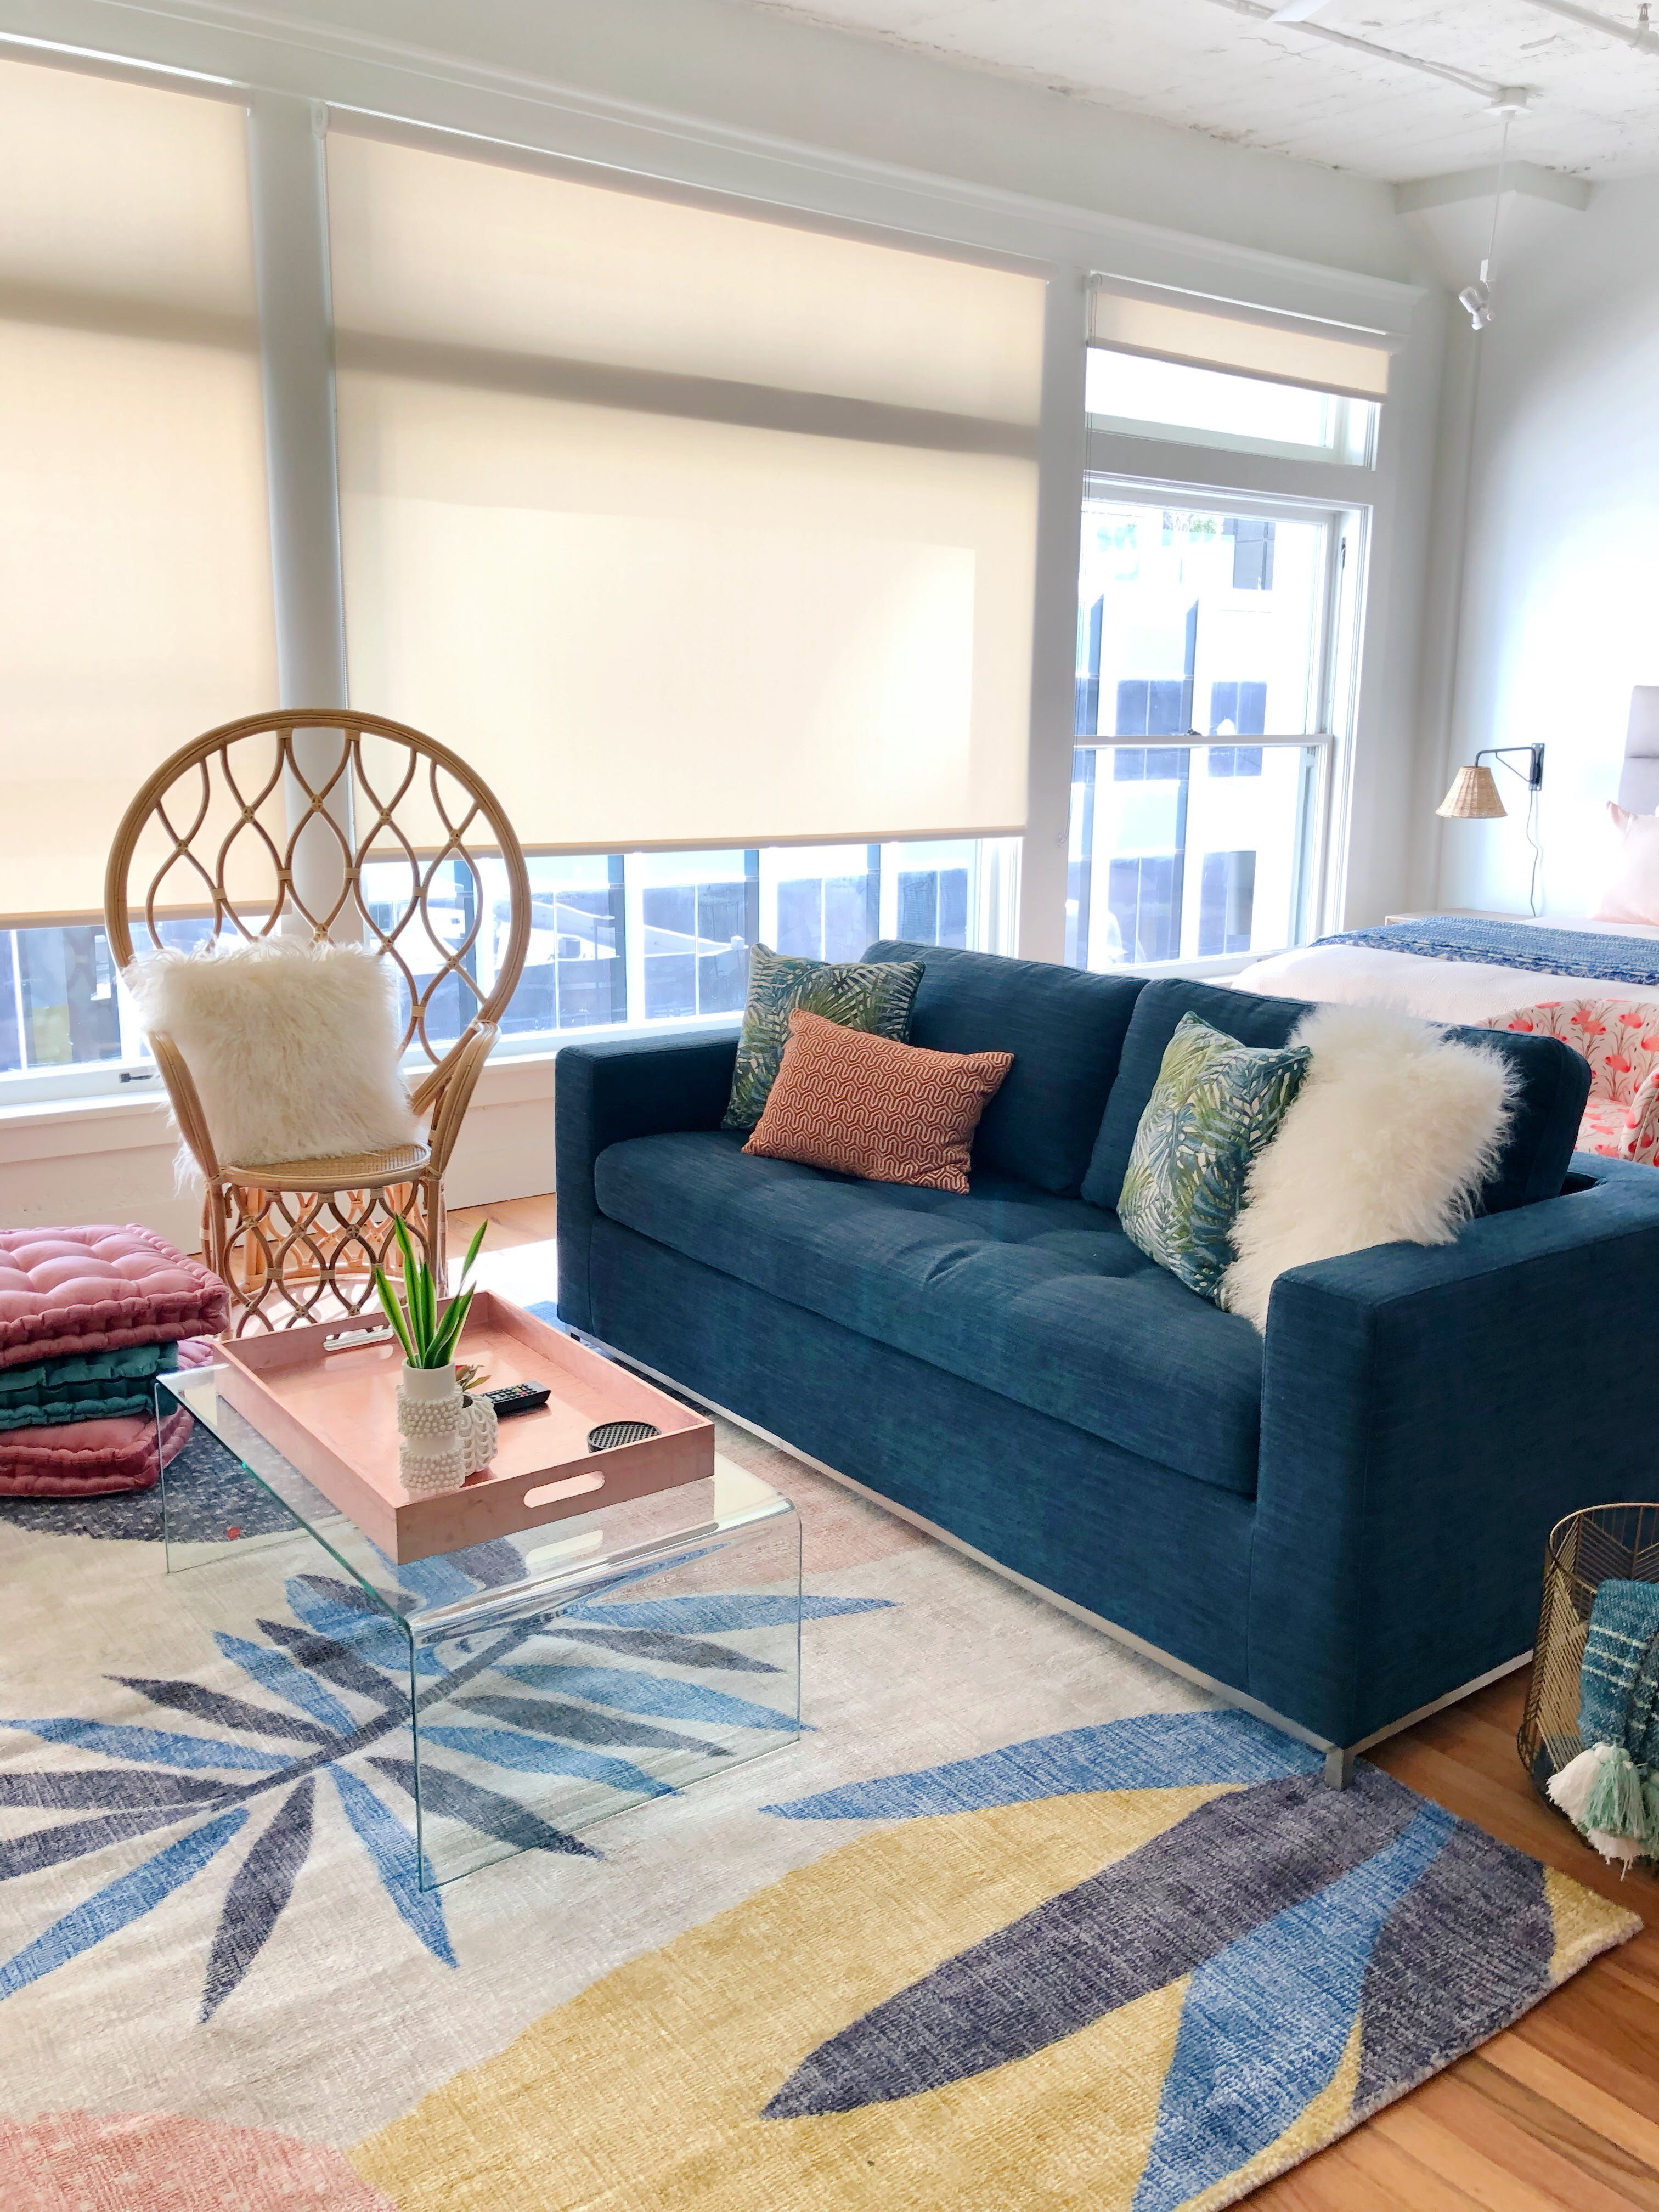 Blue couch artfully covered in throw pillows